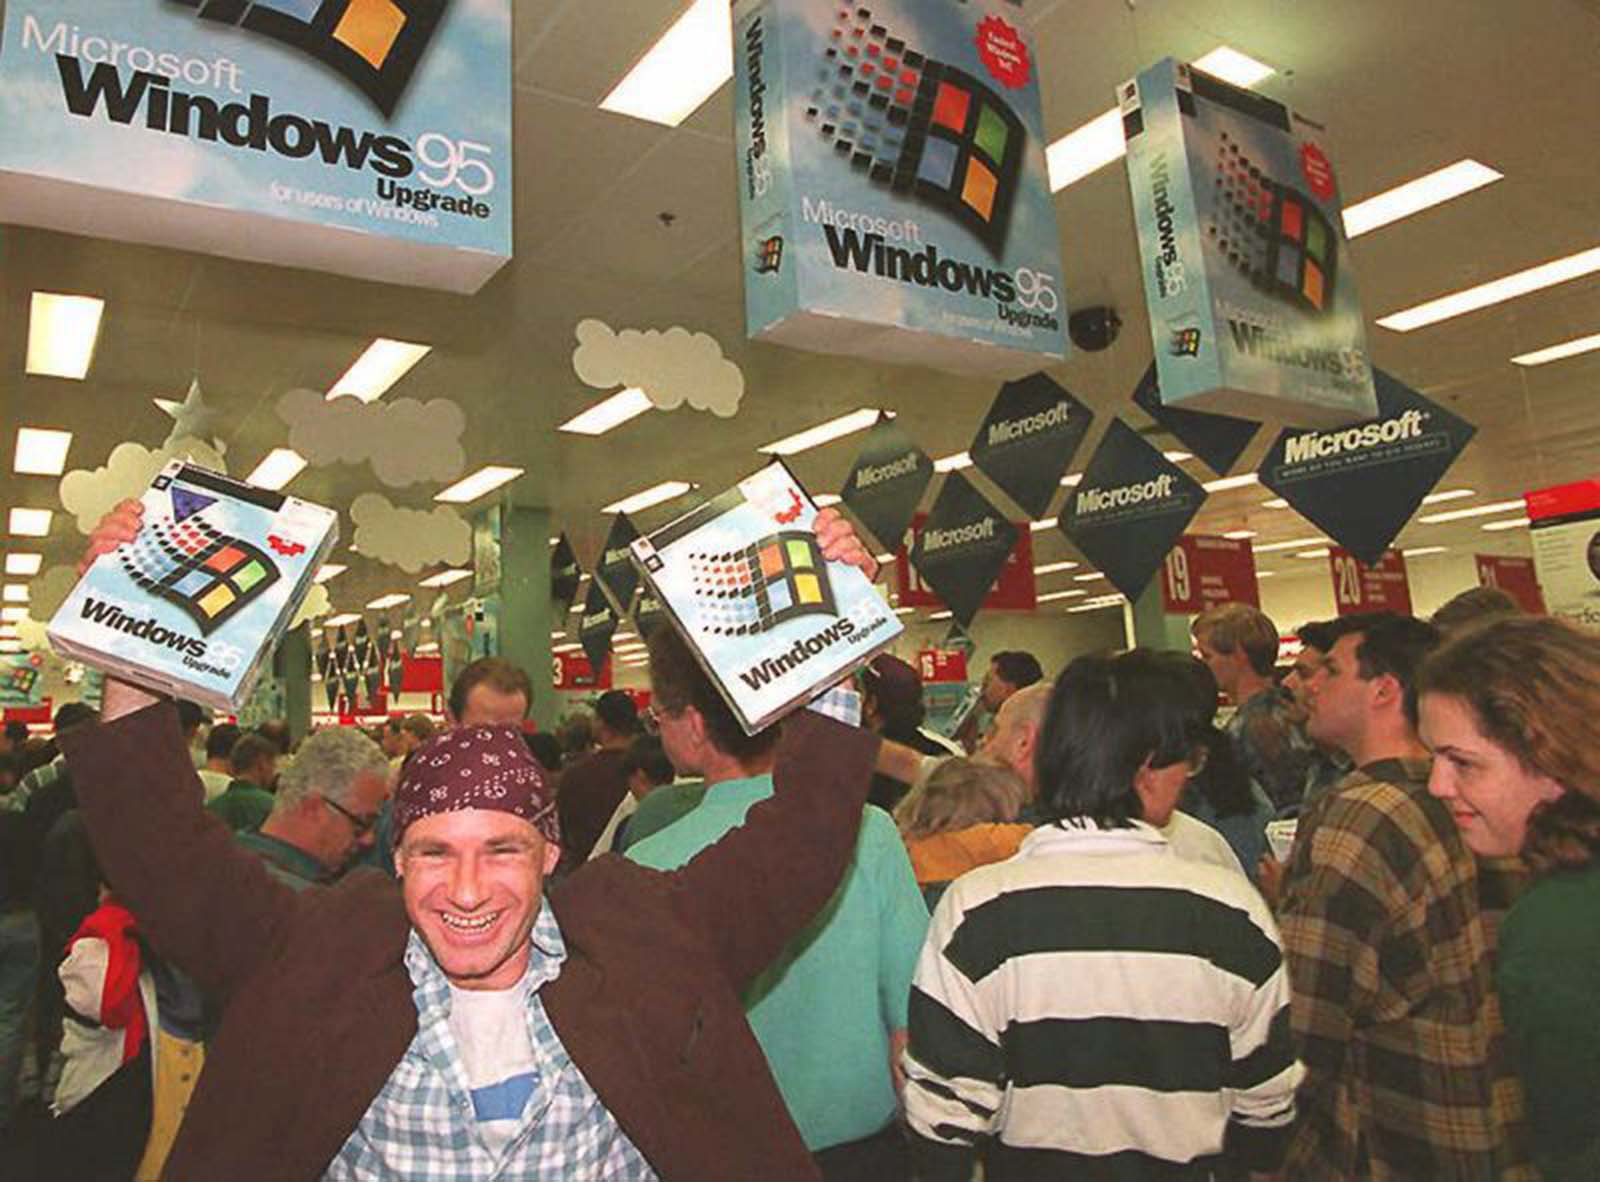 Mikol Furneaux waves two copies of Windows 95 at a midnight launch at a store in Sydney, Australia.